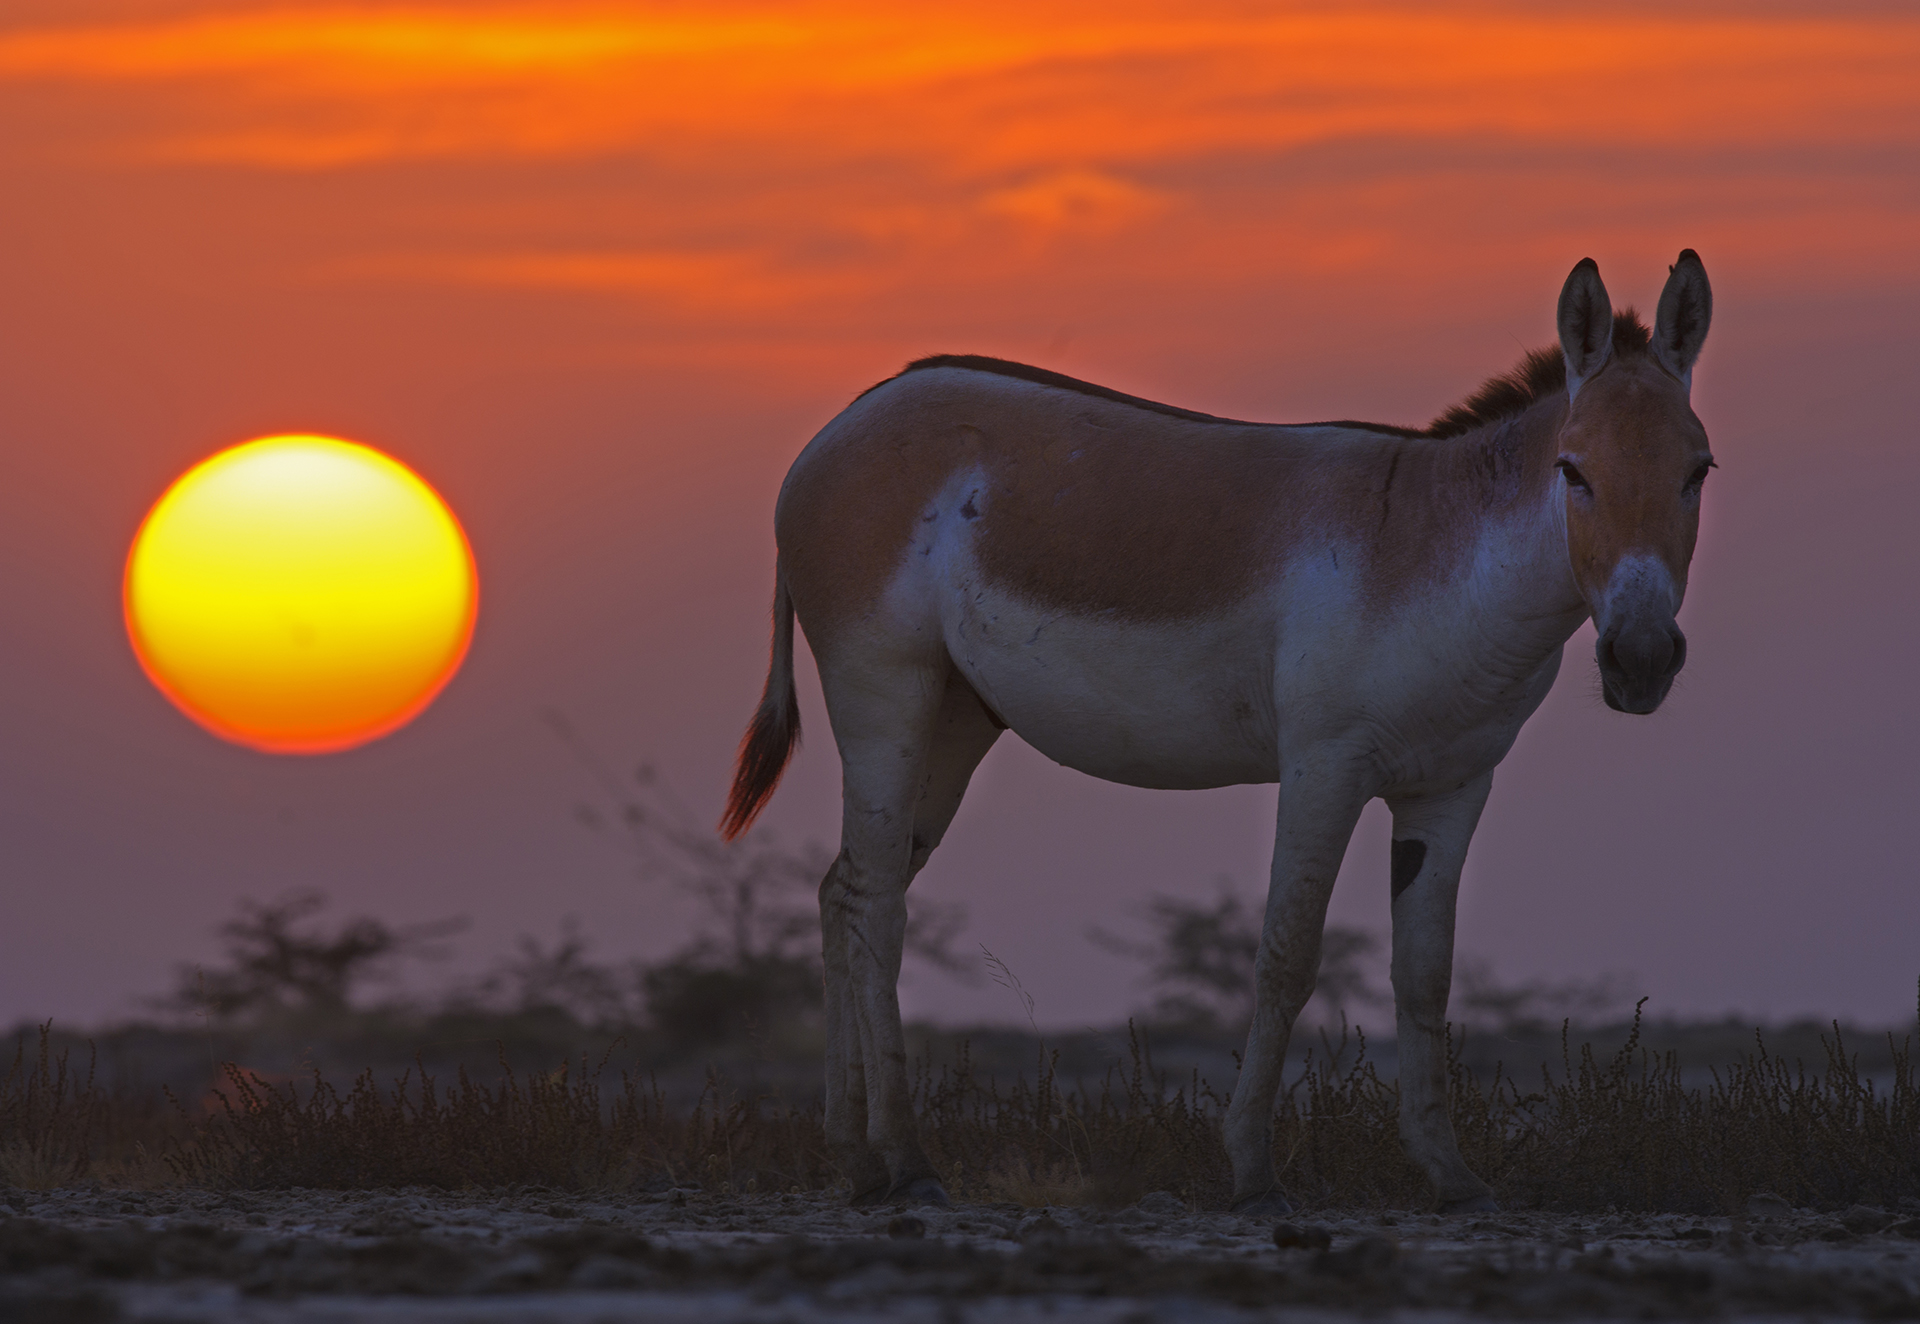 """The Little Rann provides ample grass for the grazing needs of the wild ass. However, in summer, when grass cover is reduced, it may also feed on the leaves and pods of the invasive species Prosopis, what locals refer to as gando bawal or """"mad tree""""."""